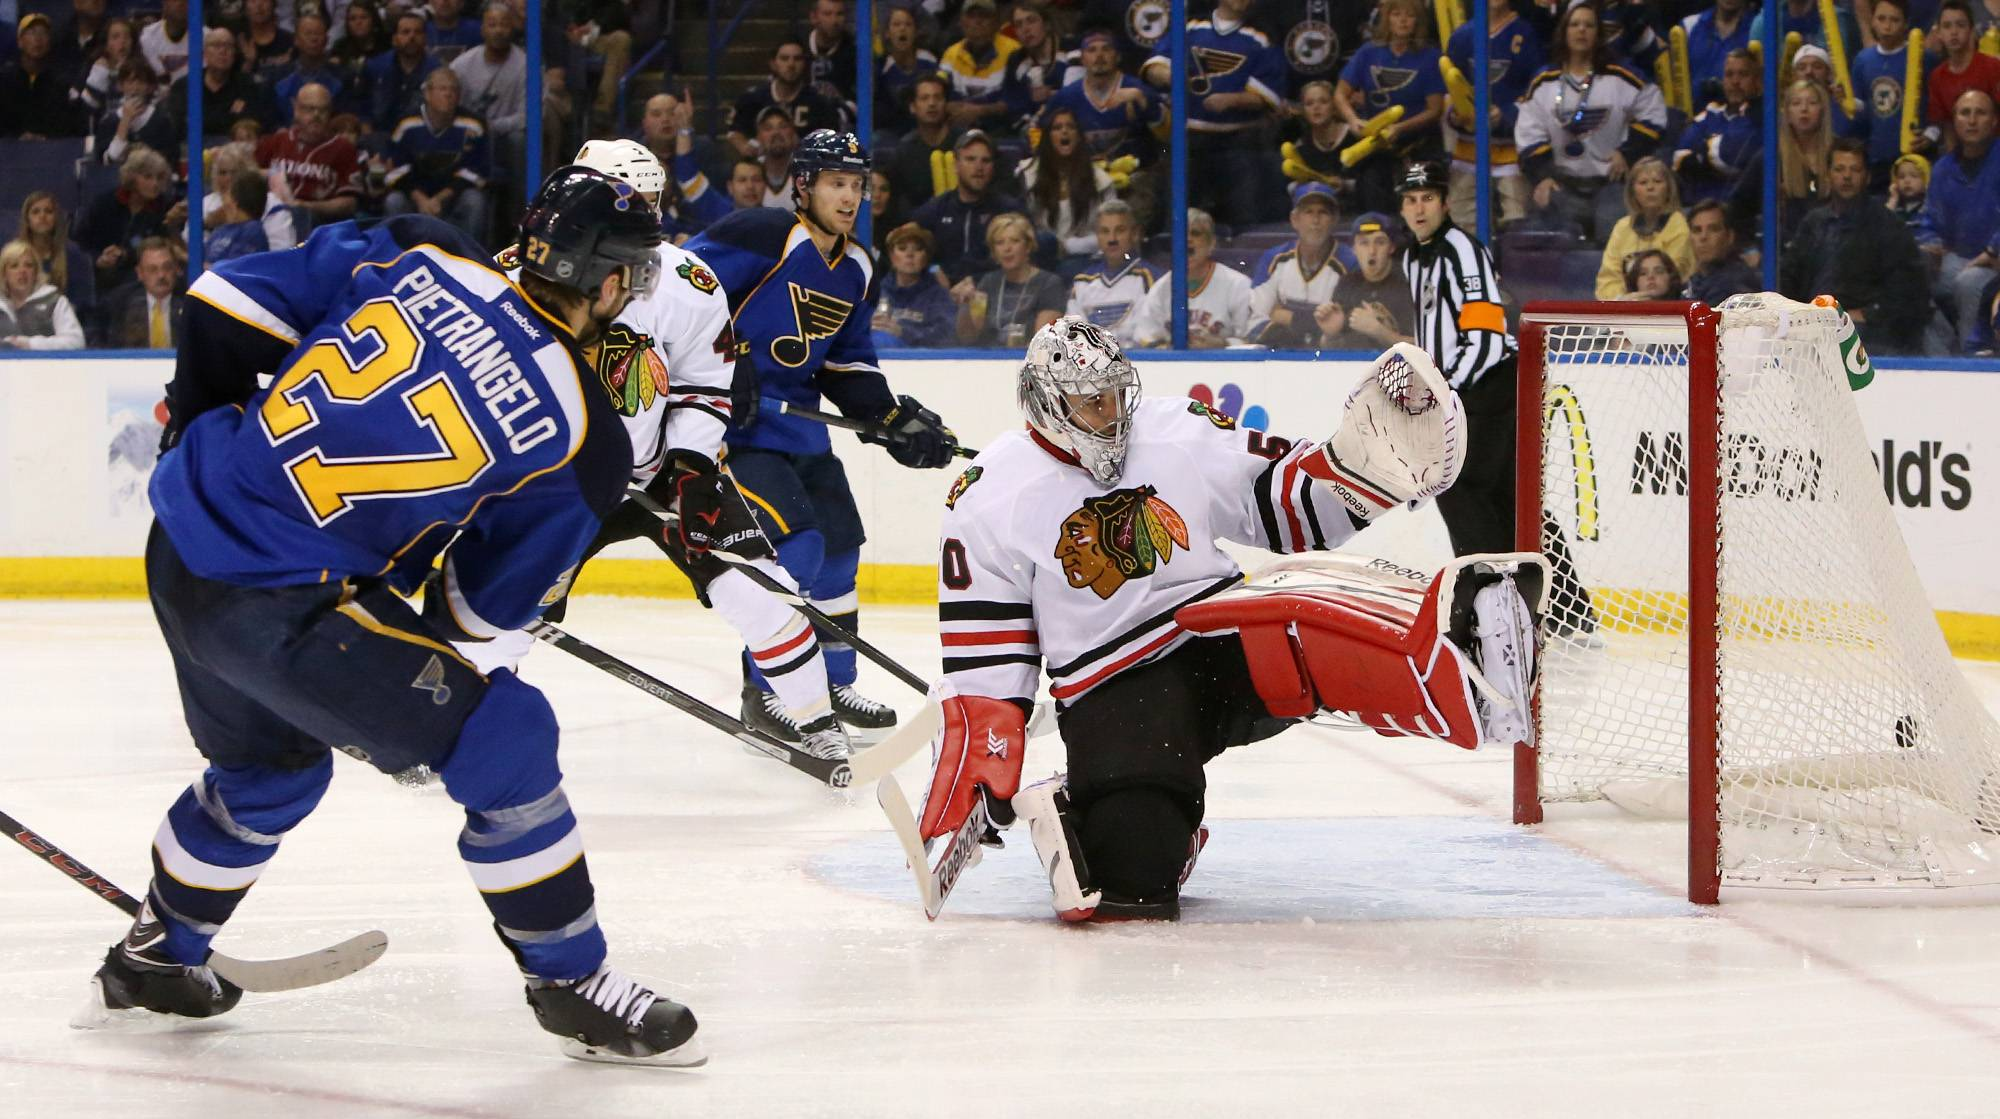 St. Louis Blues defenseman Alex Pietrangelo scores past Chicago Blackhawks goaltender Corey Crawford to tie the game in third period action during Game 5 of a Western Conference quarterfinal playoff game Friday, April 25, 2014, at the Scottrade Center in St. Louis.